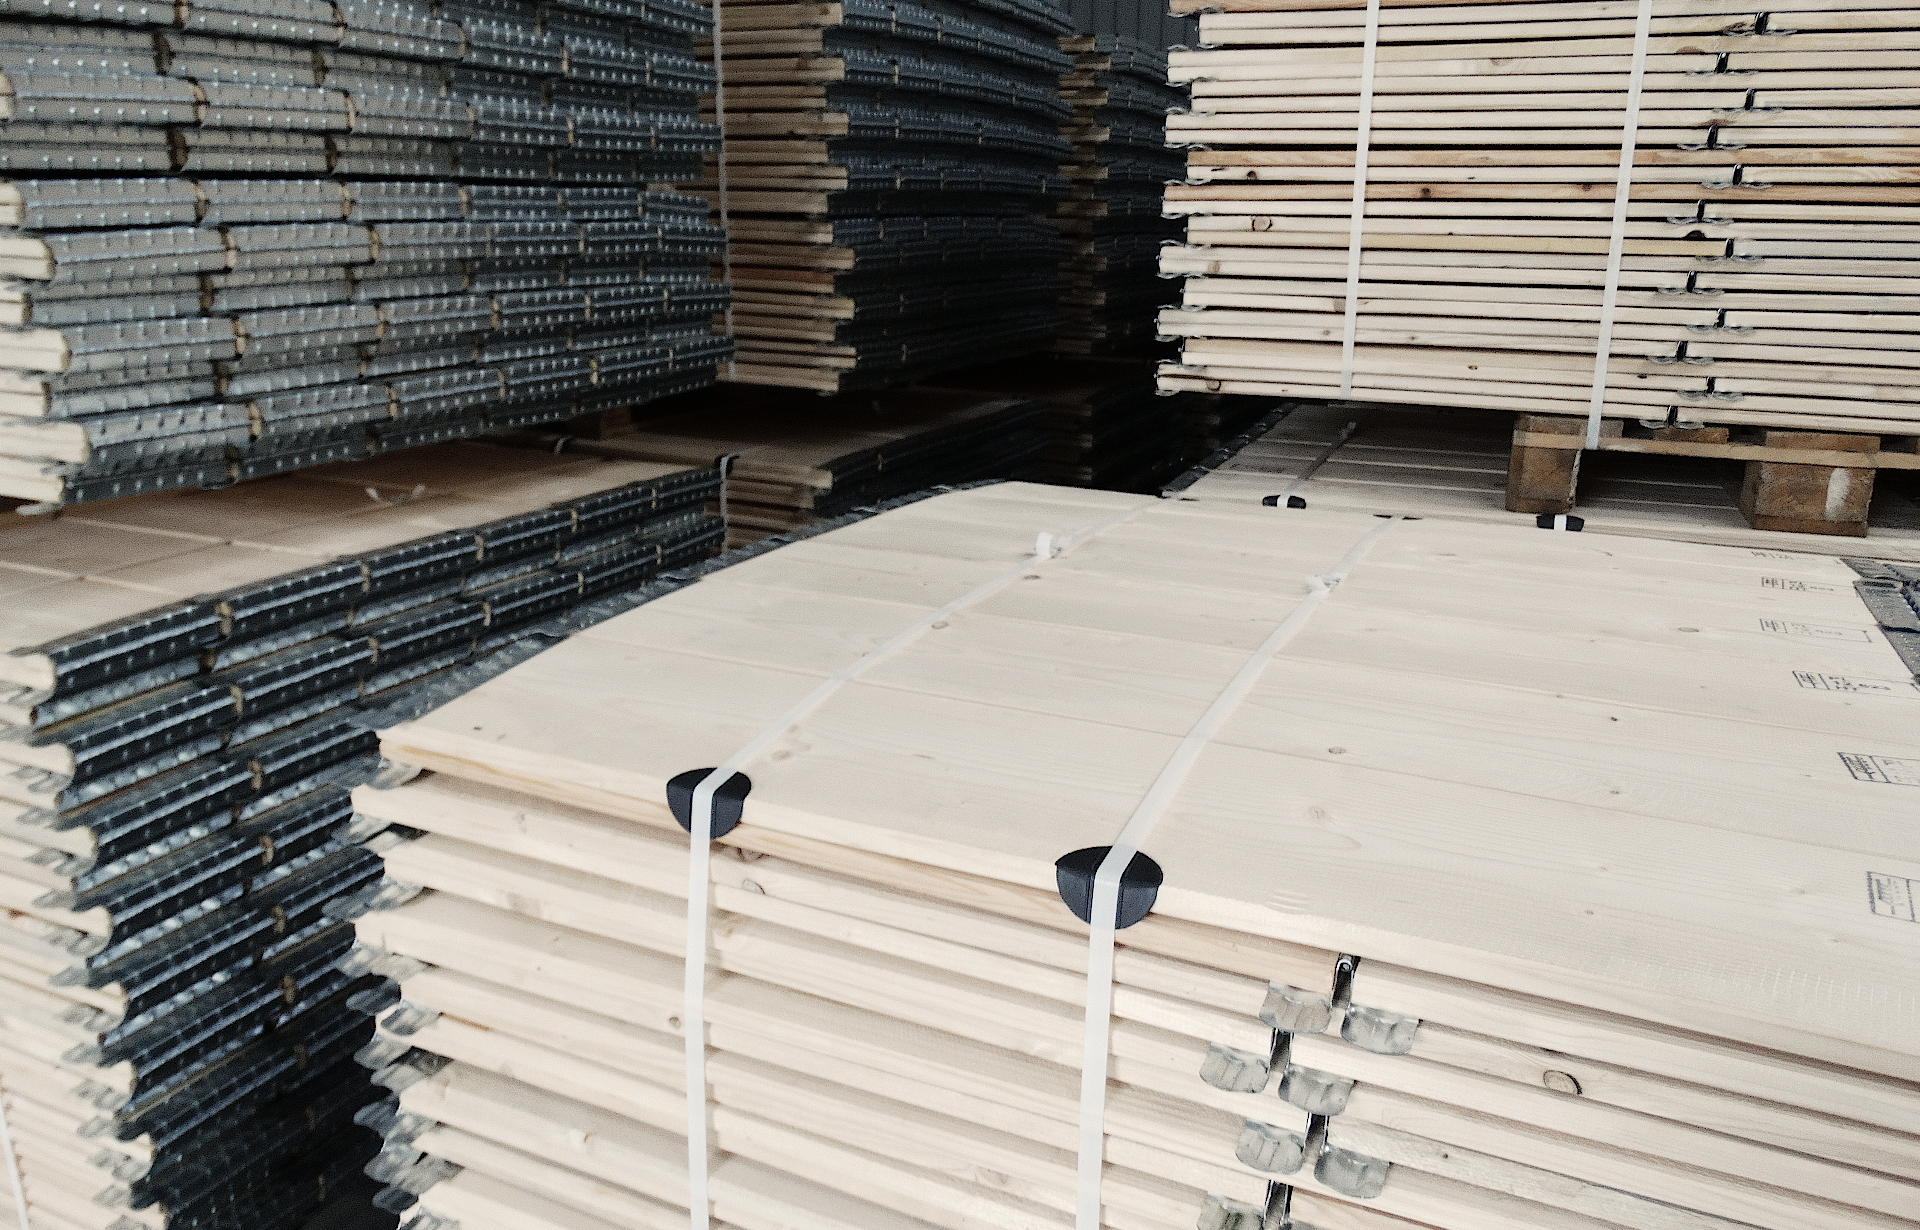 Production department of wooden collars for pallets